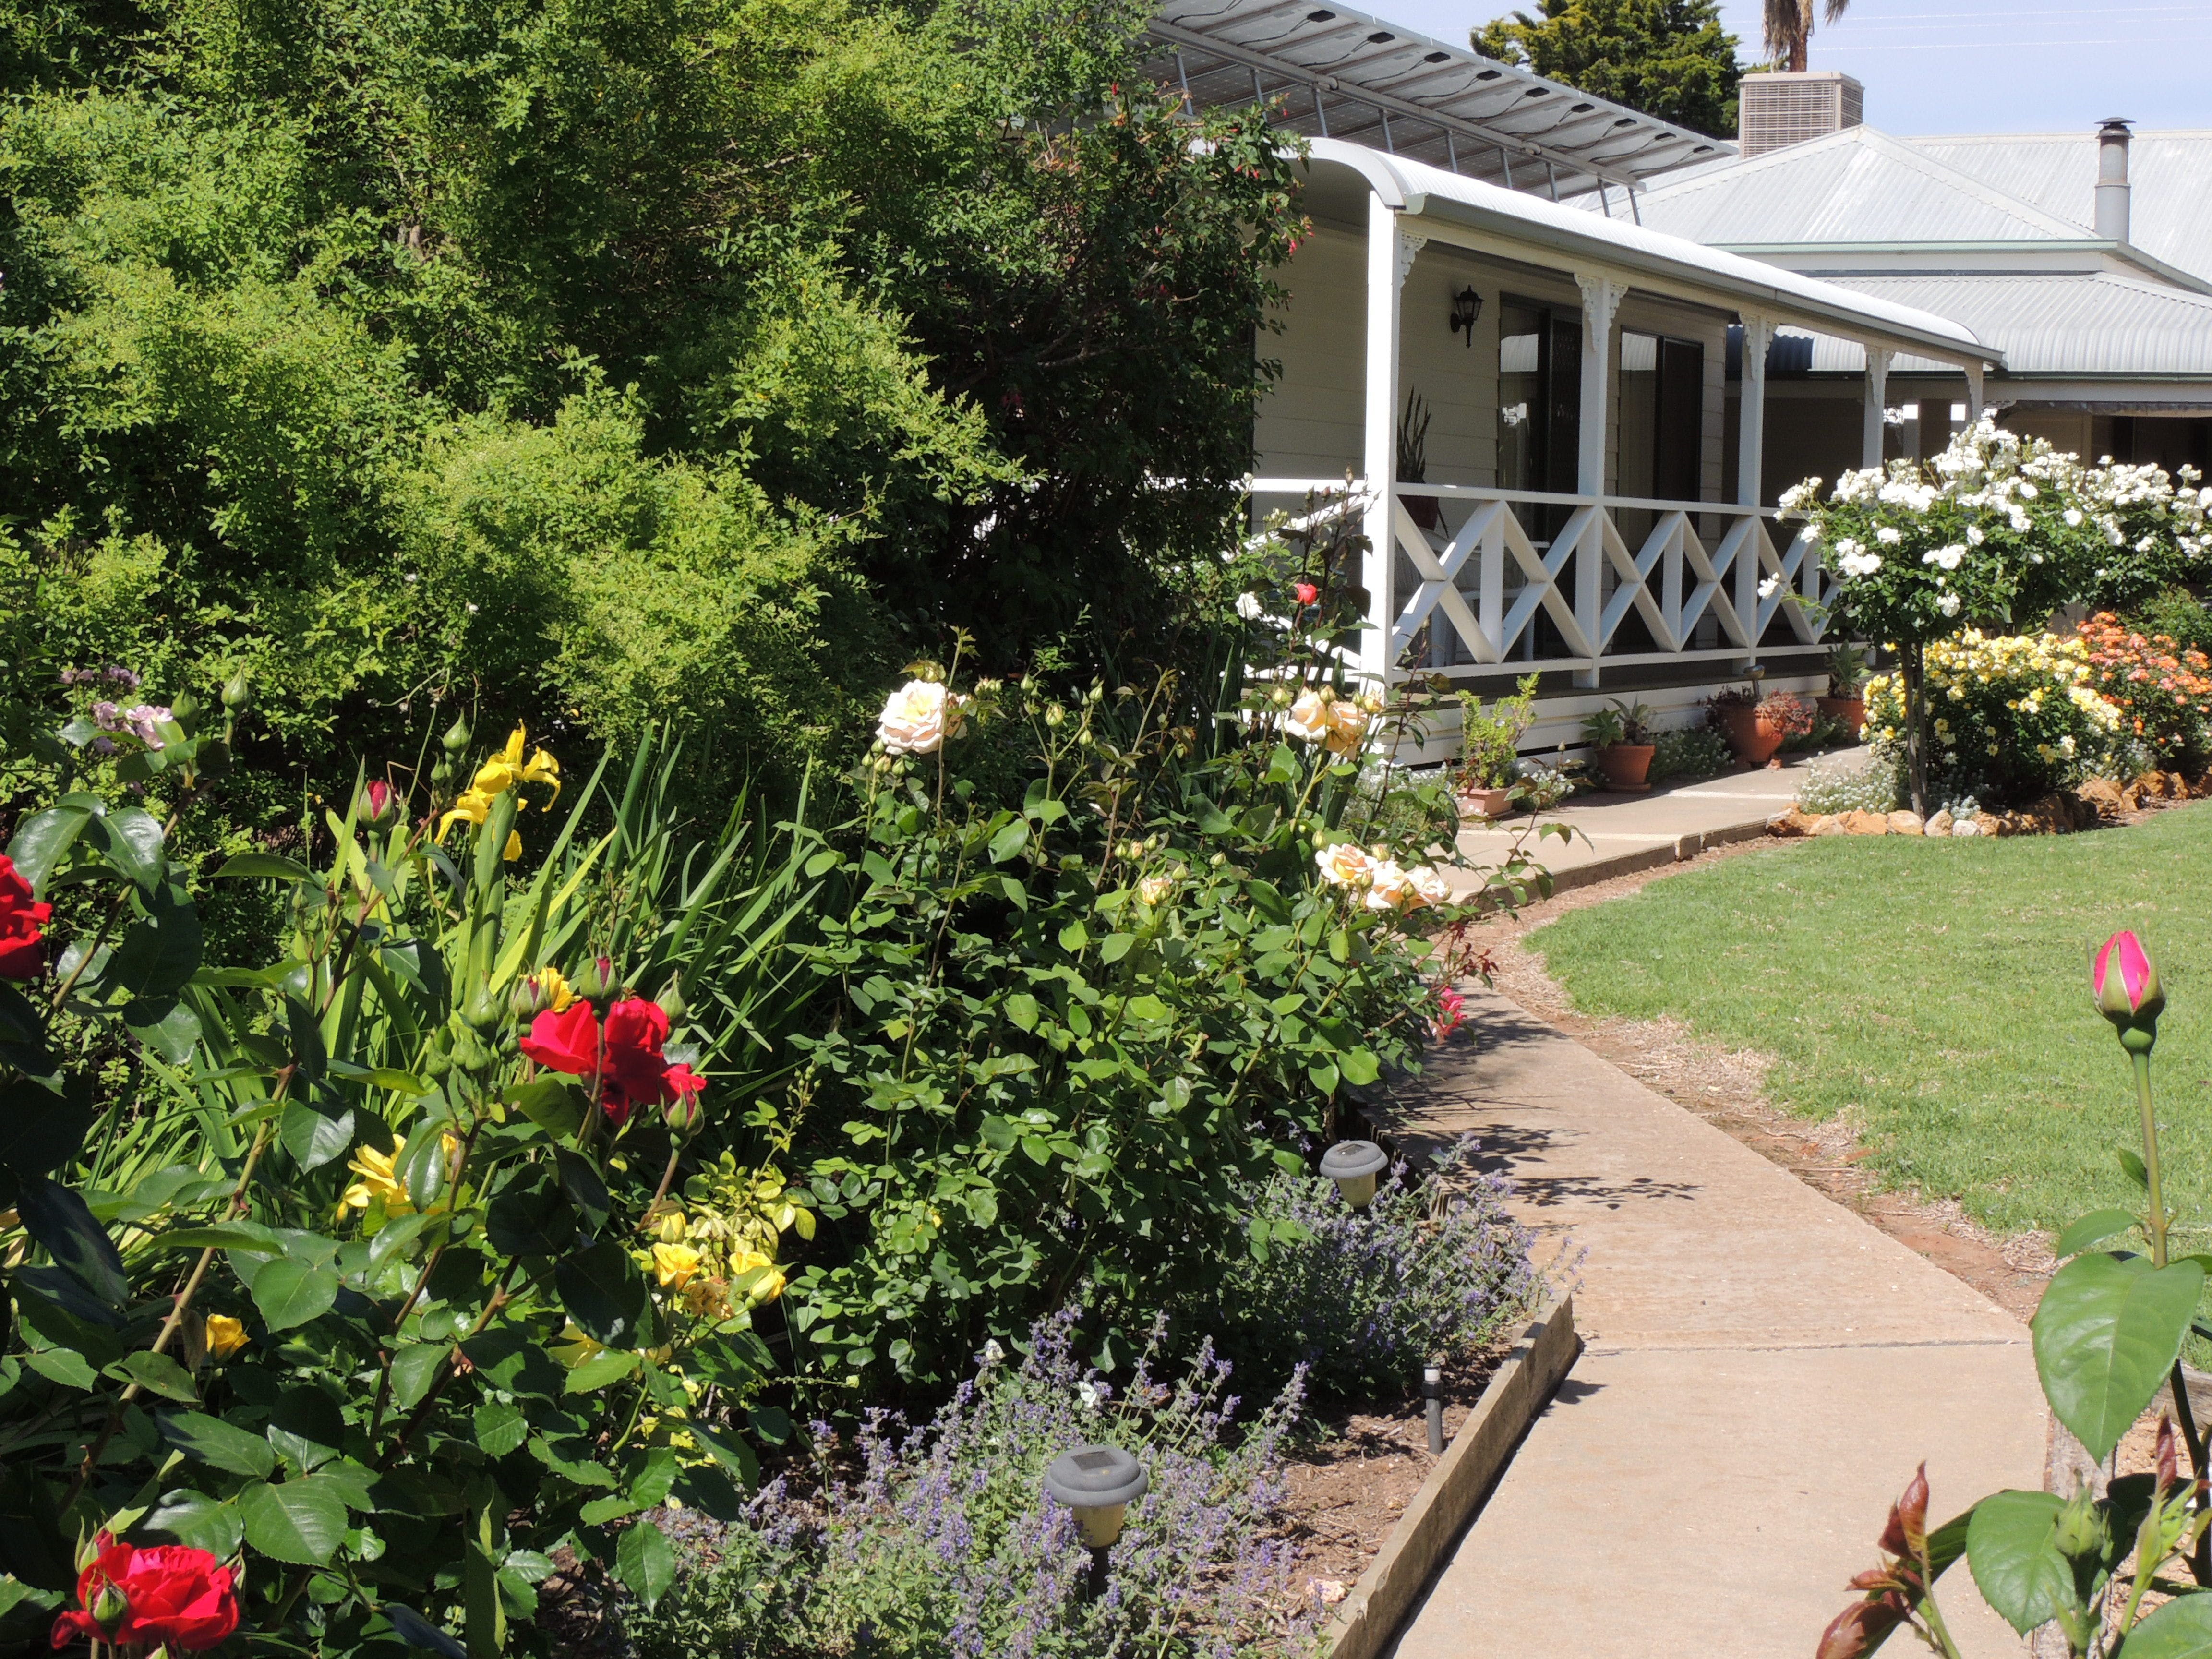 Burrabliss Bed and Breakfast - Accommodation Adelaide